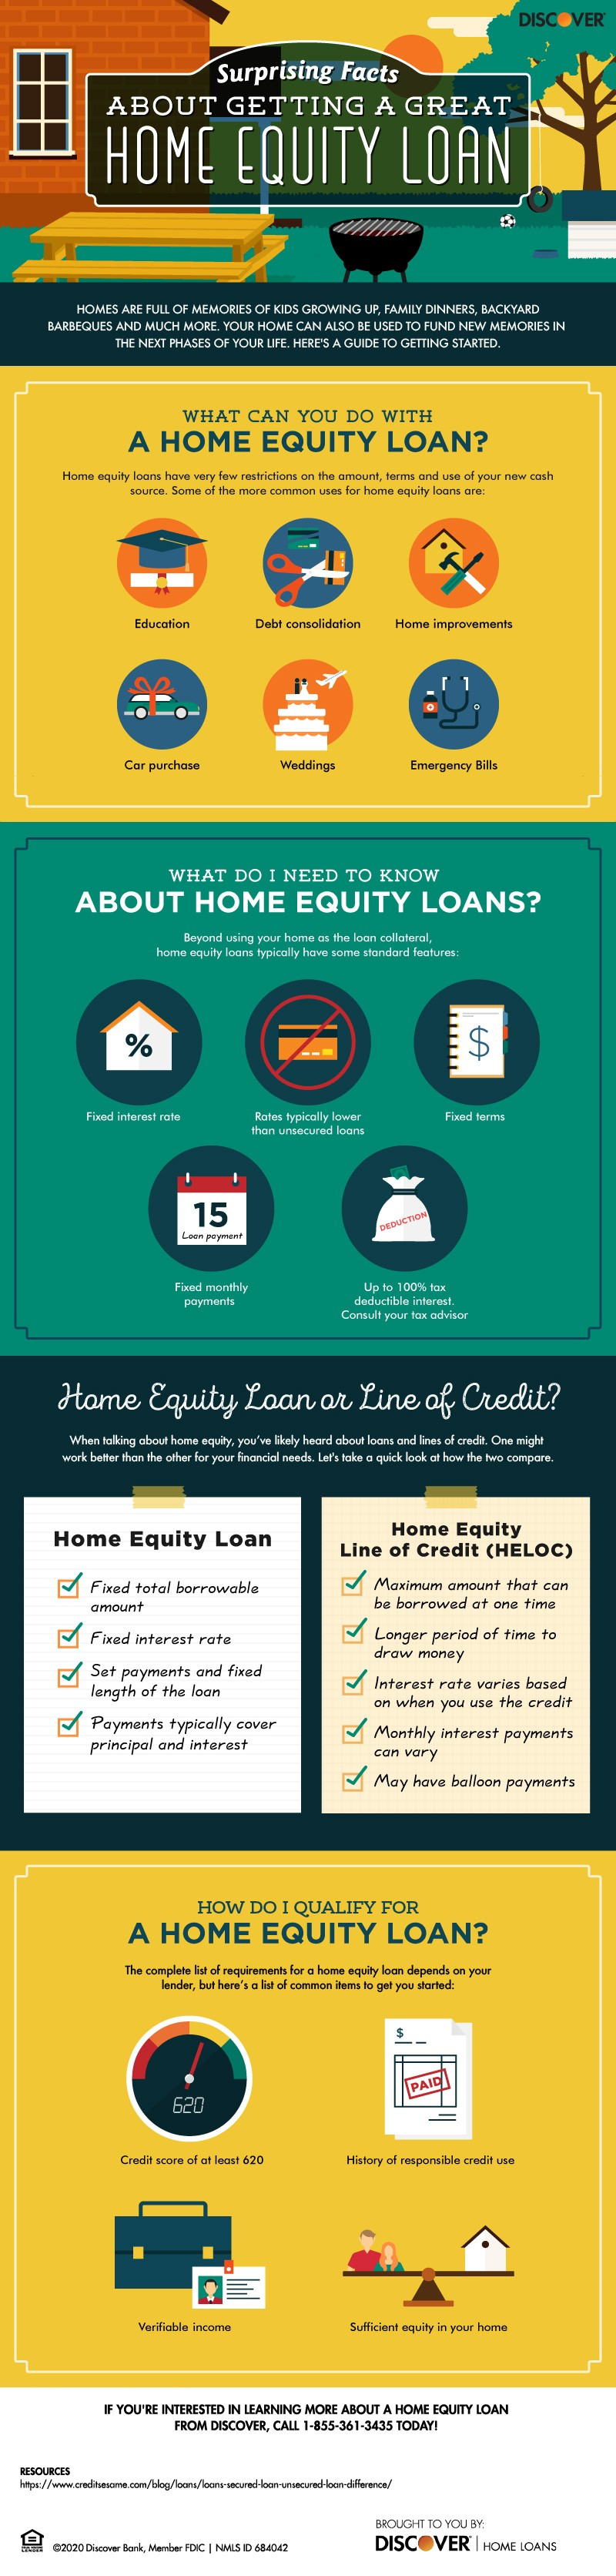 Infographic identifying surprising facts about getting a home equity loan